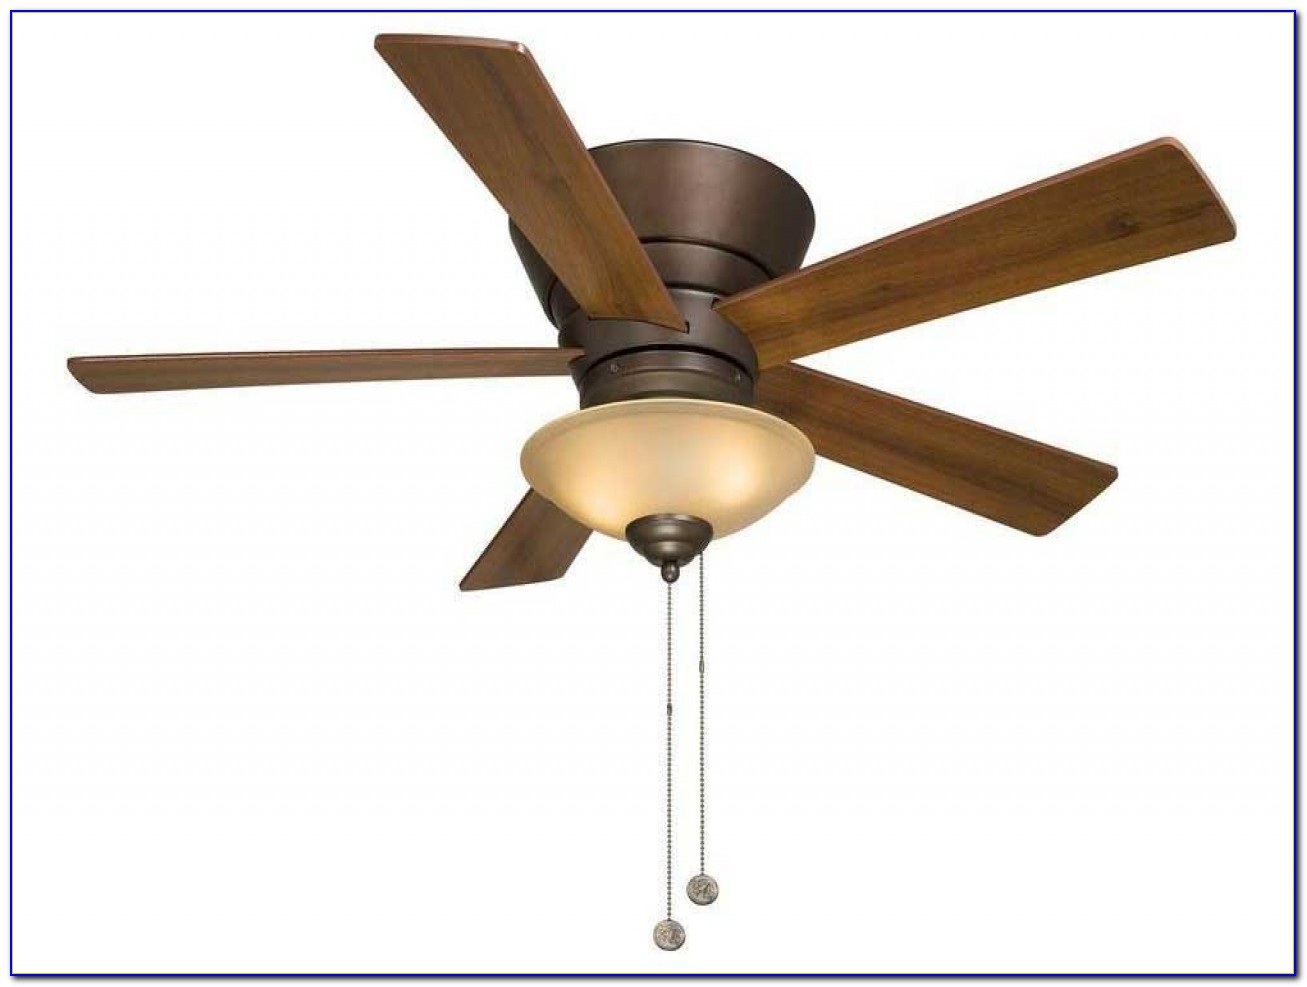 Hampton Bay Altura Ceiling Fan Manual